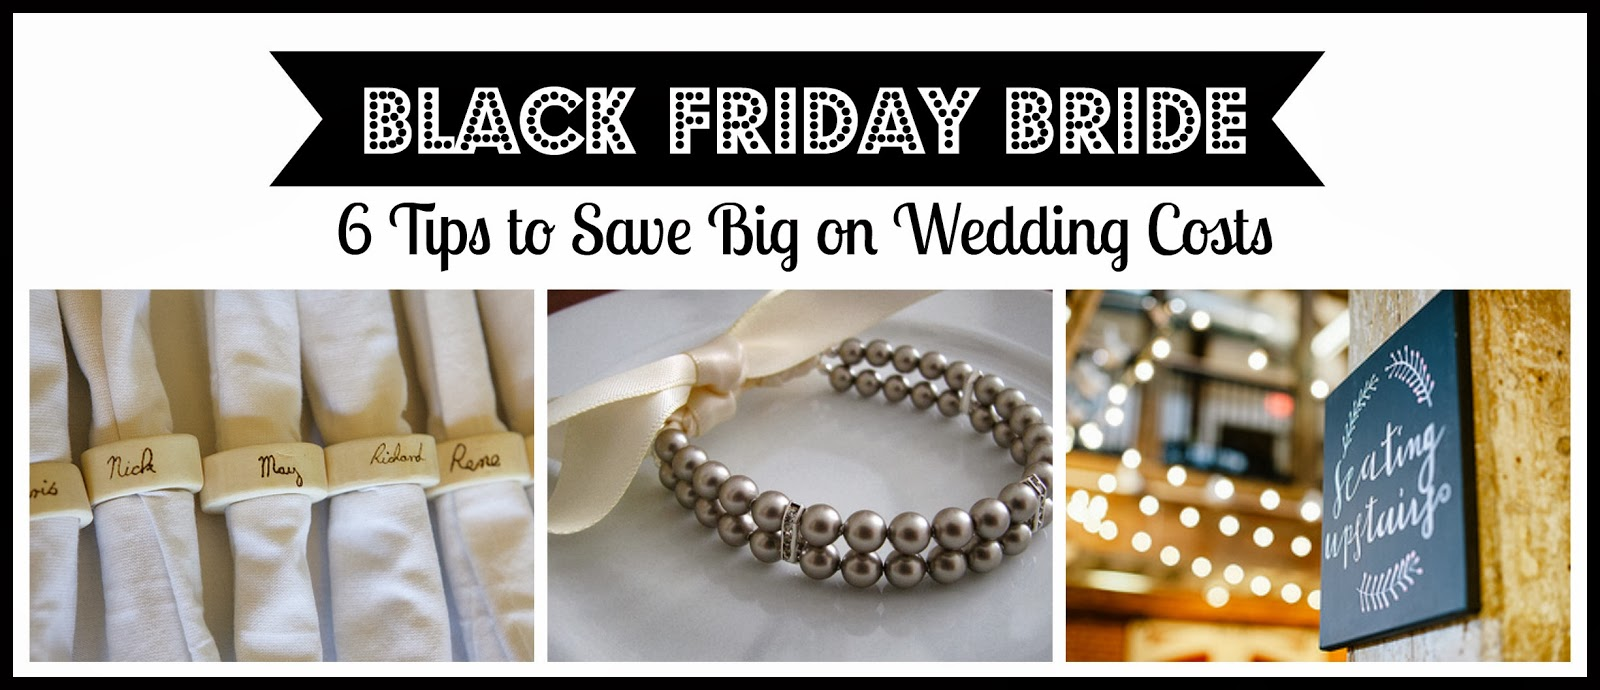 Black Friday Bride: 6 Tips to Save Big on Wedding Costs